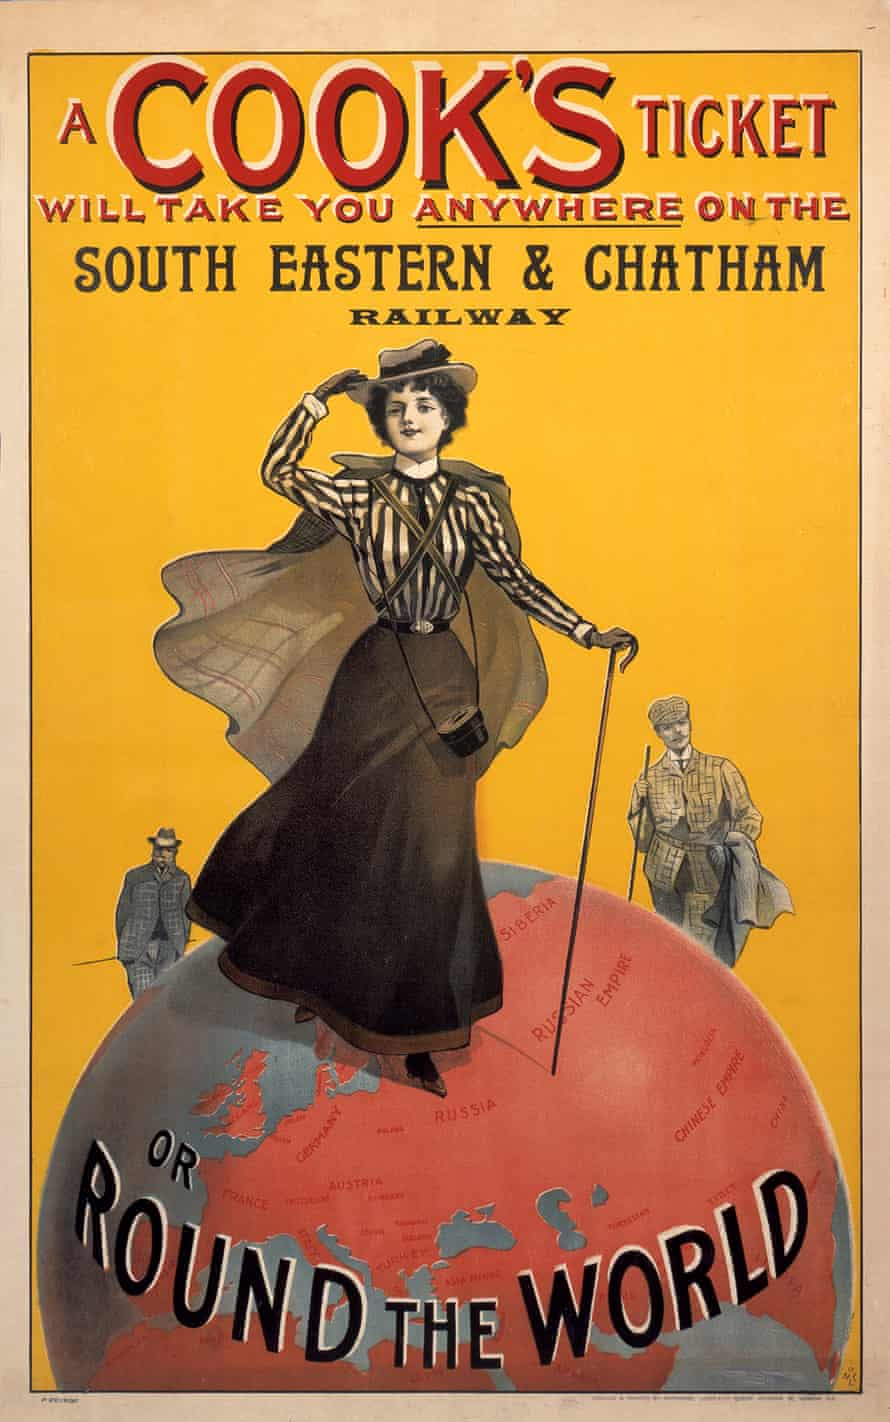 A Cooks Ticket, SE&CR poster, 1910.